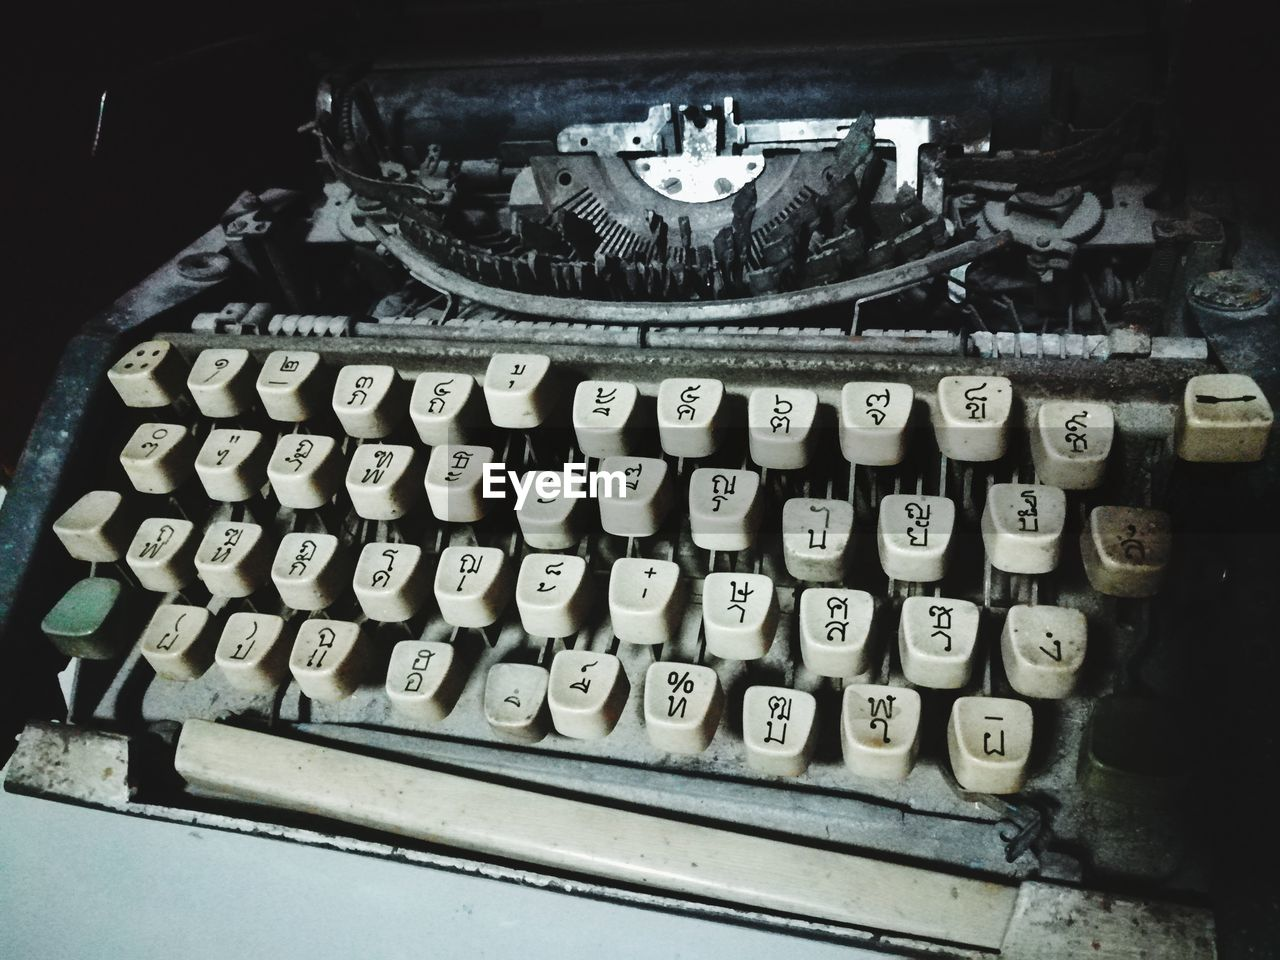 typewriter, retro styled, technology, communication, indoors, antique, old, machinery, letter, close-up, text, no people, alphabet, high angle view, number, still life, machine part, analog, obsolete, keyboard, computer key